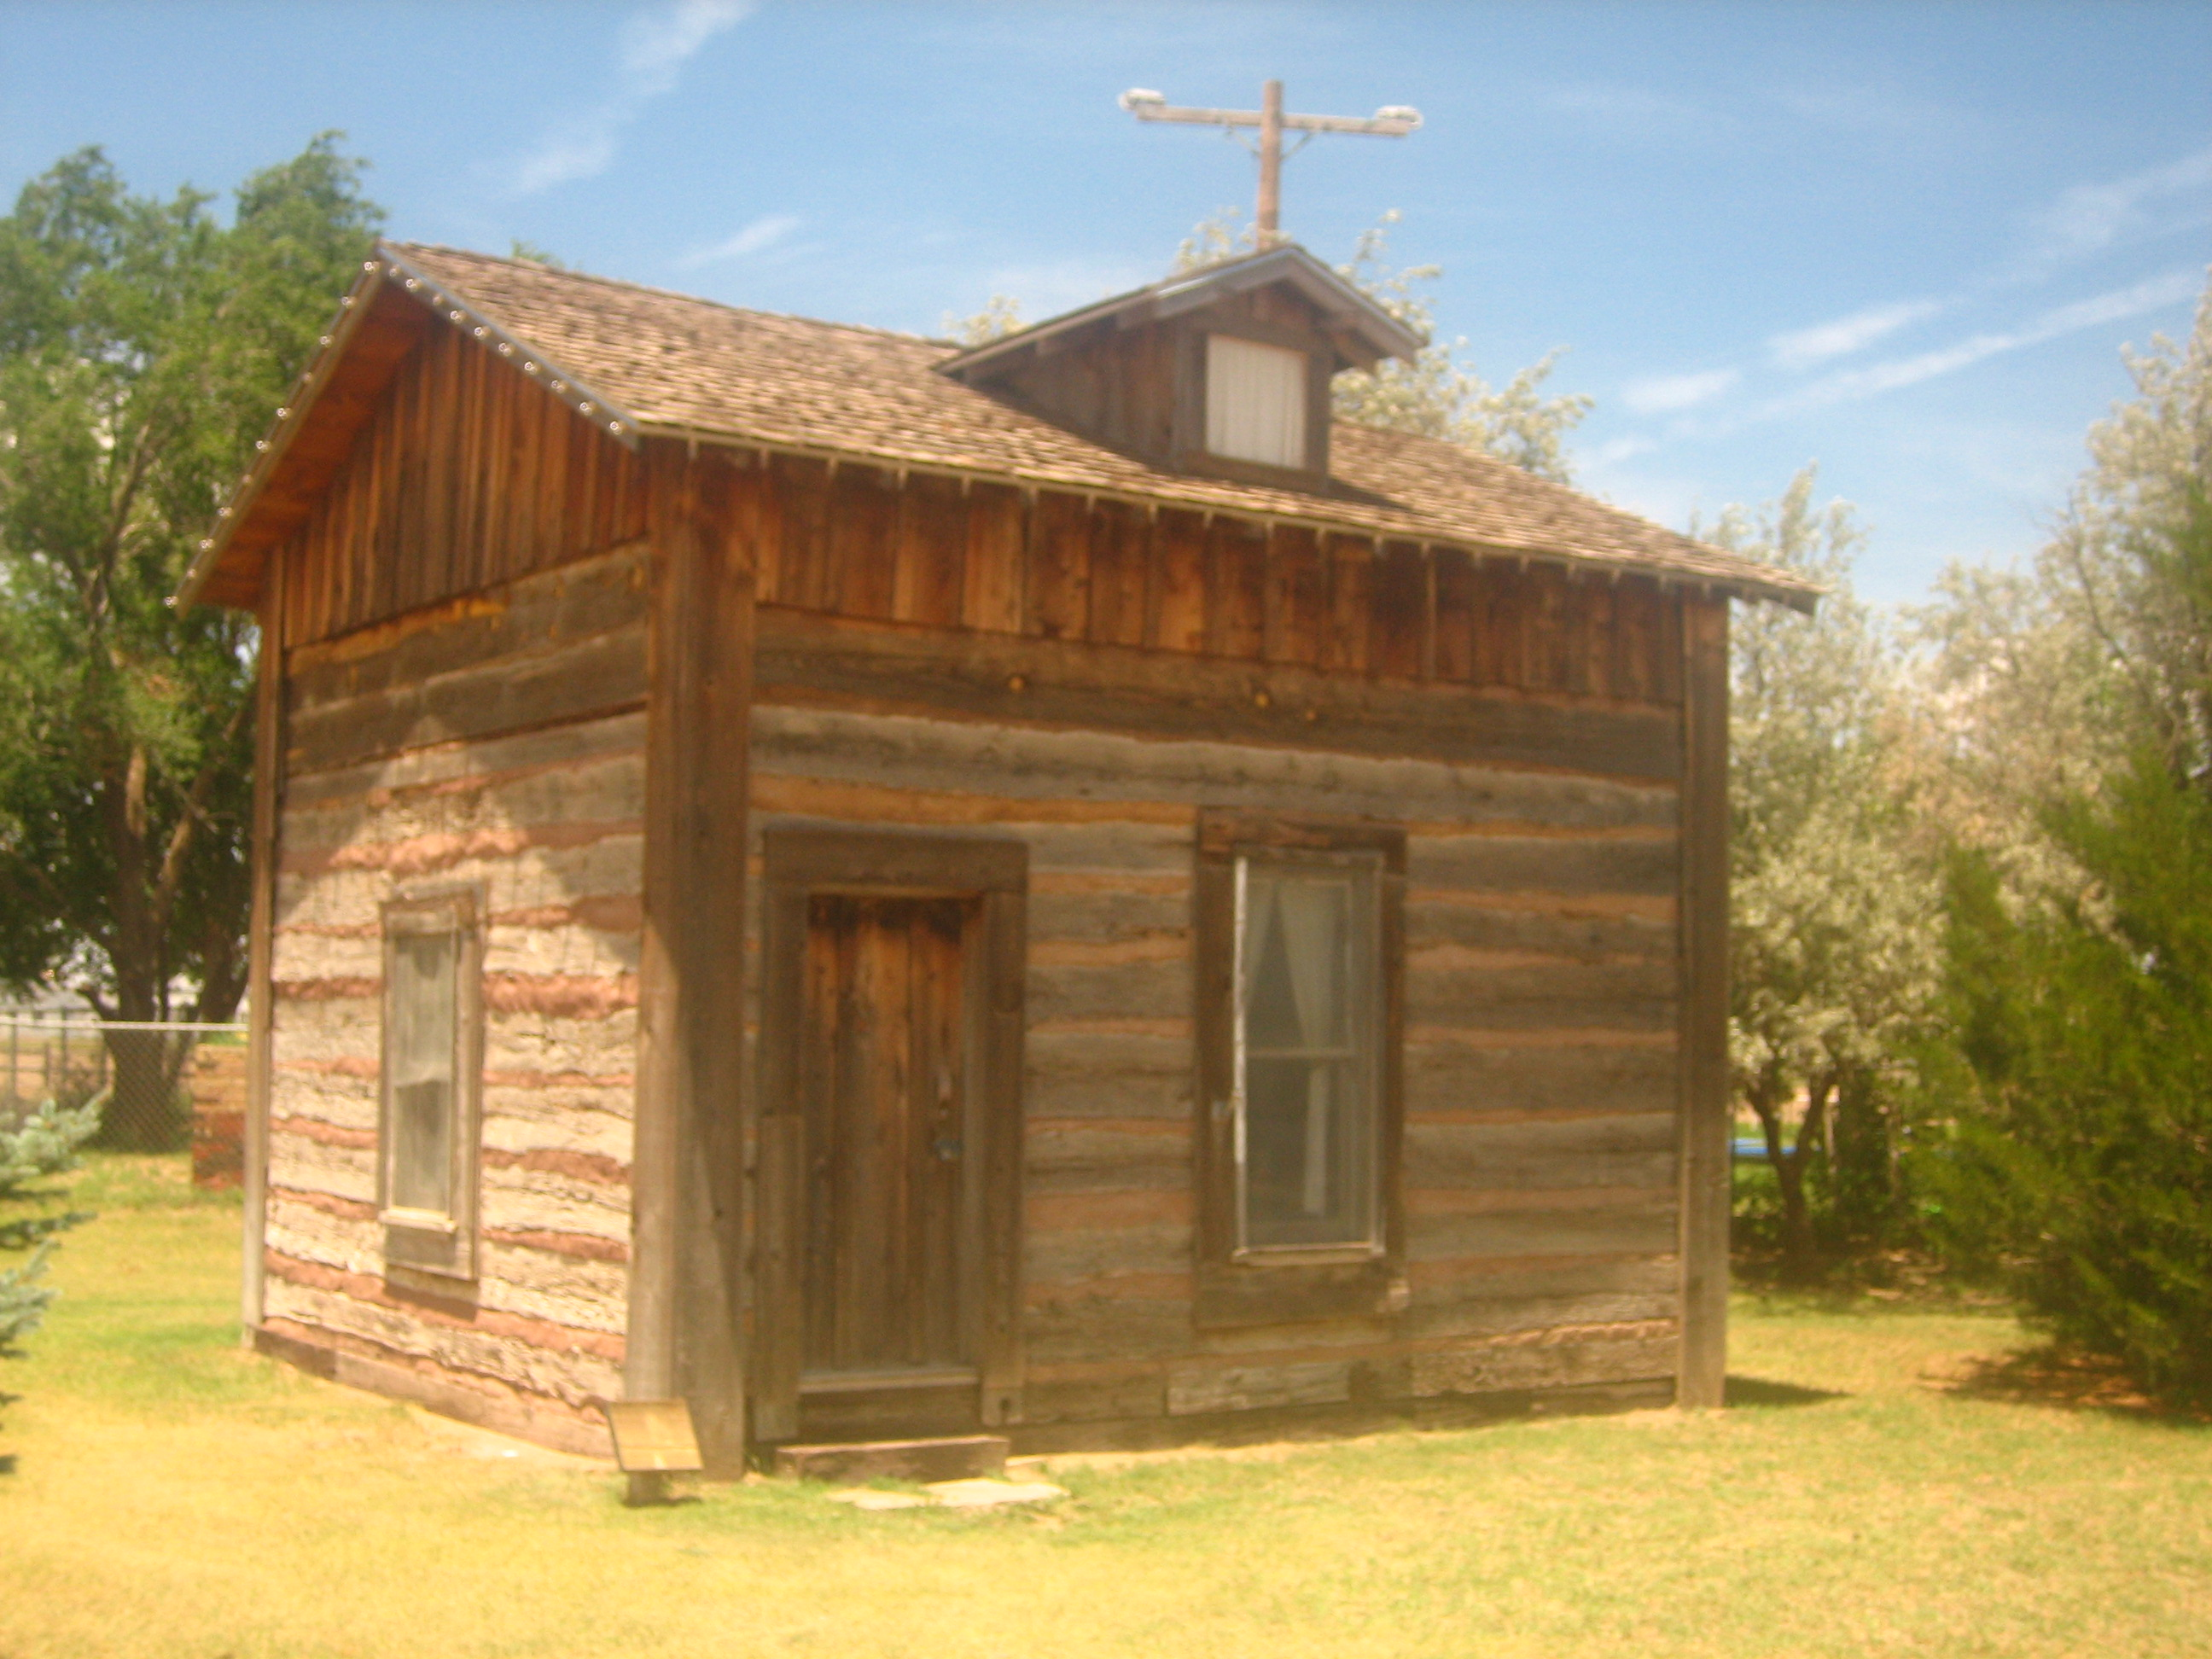 File:Muleshoe Log Cabin.JPG Wikimedia Commons. Full resolution‎  file, nominally Width 2592 Height 1944 pixels, file with #B28919.